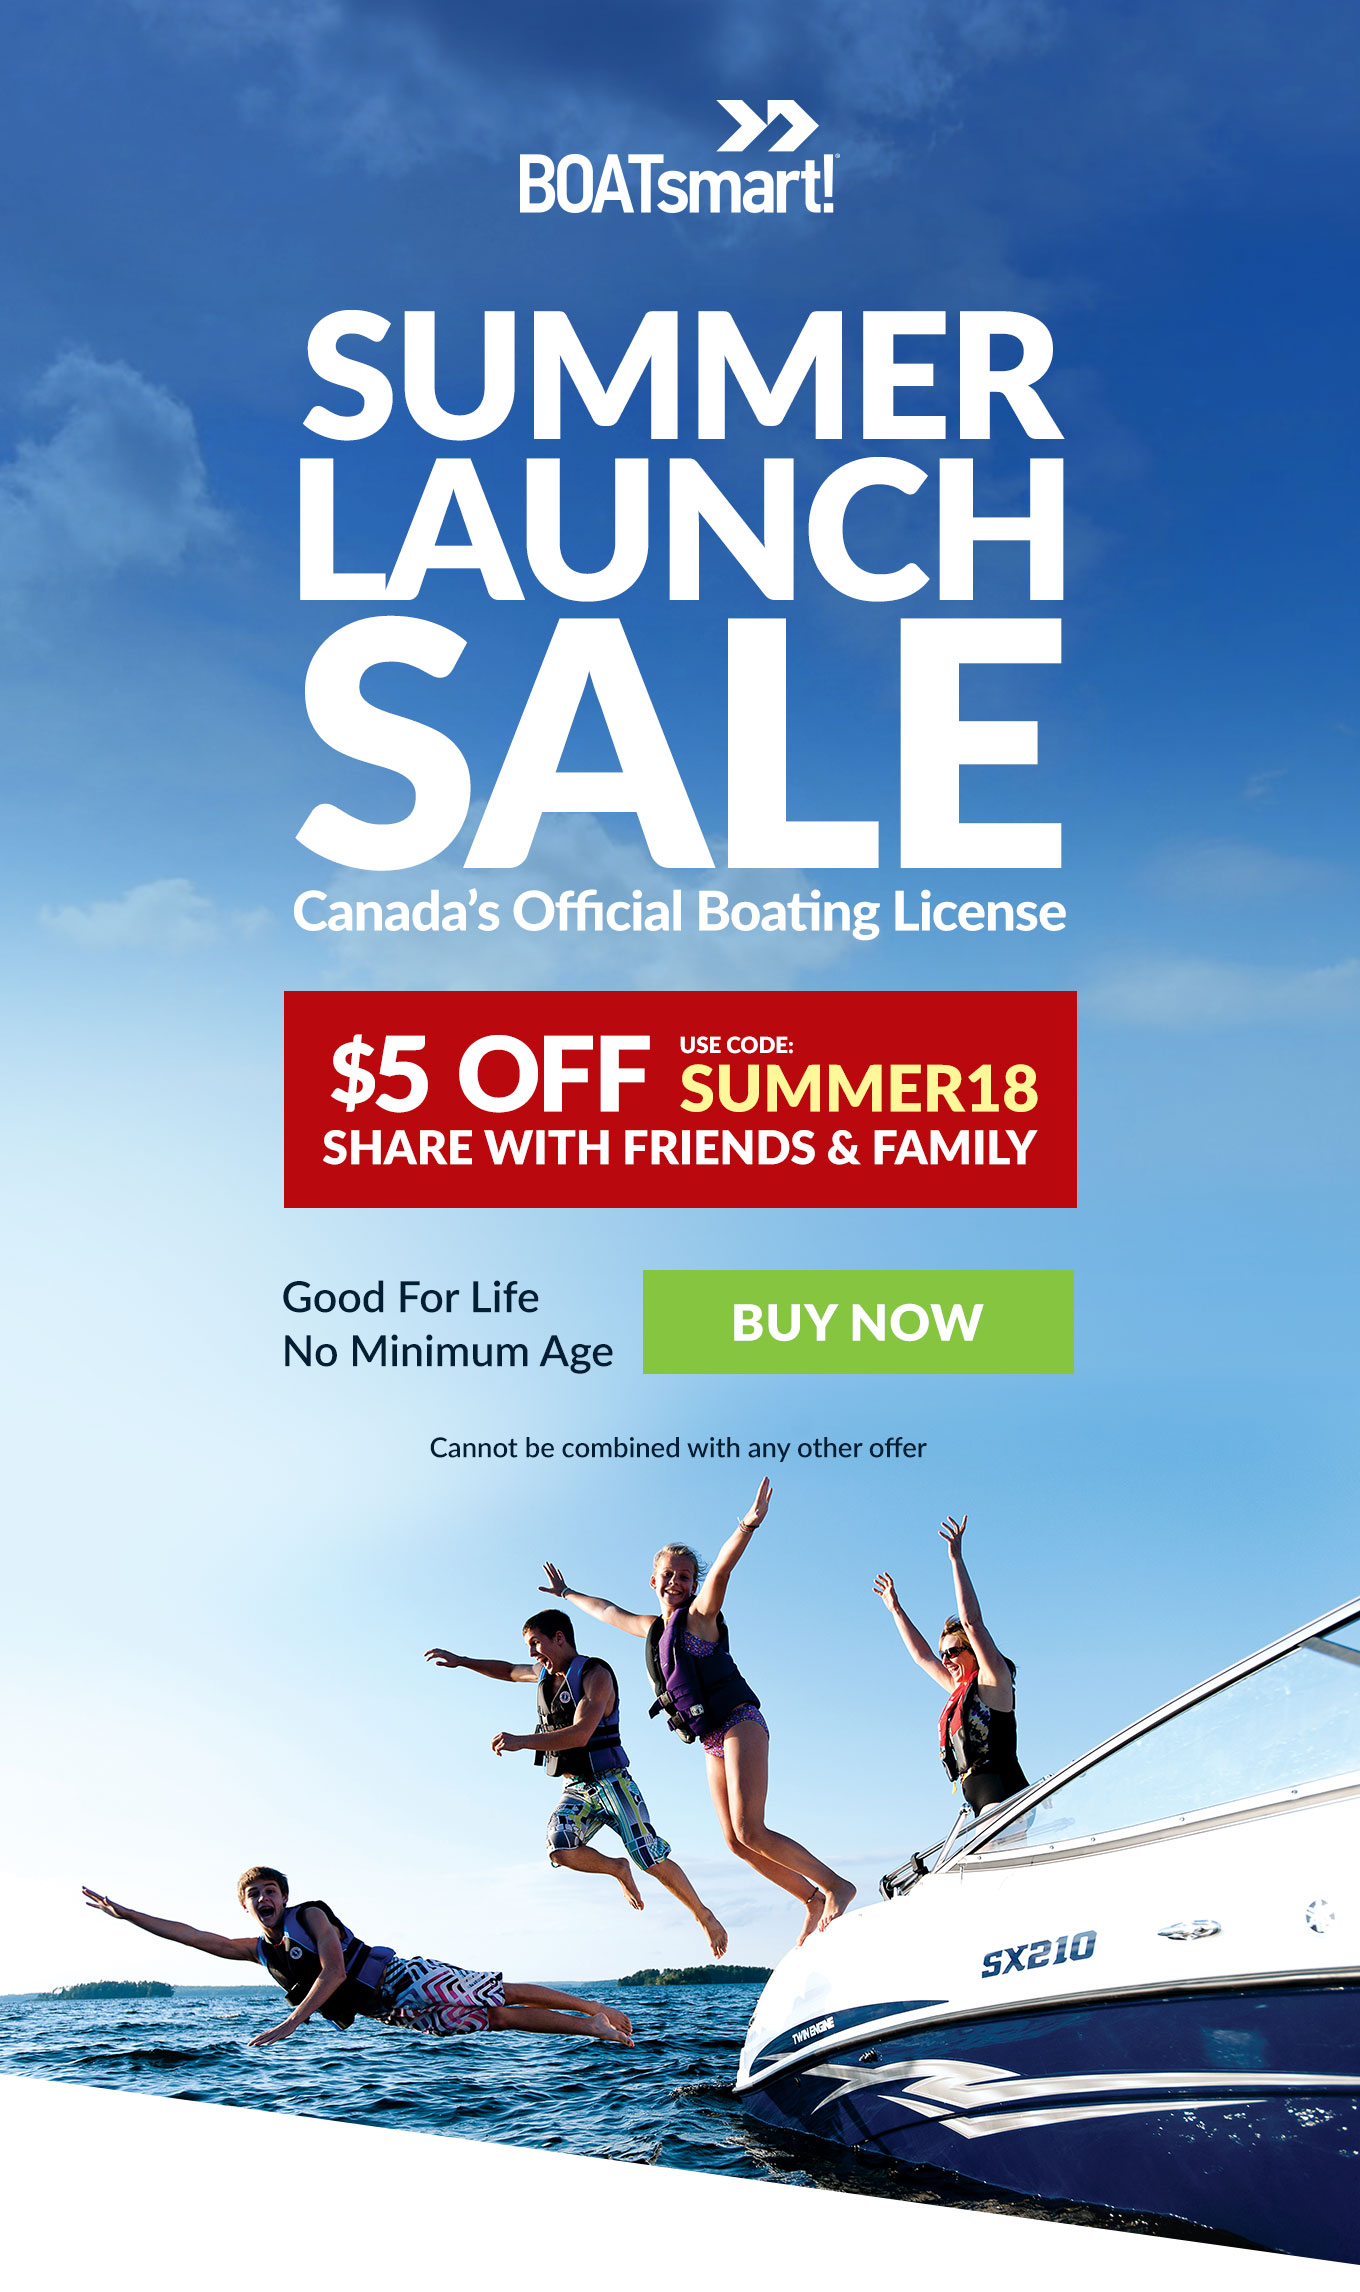 Calling All Captains, Coast to Coast. Summer Launch Sale, Save $5 on your Official Canadian Boat License